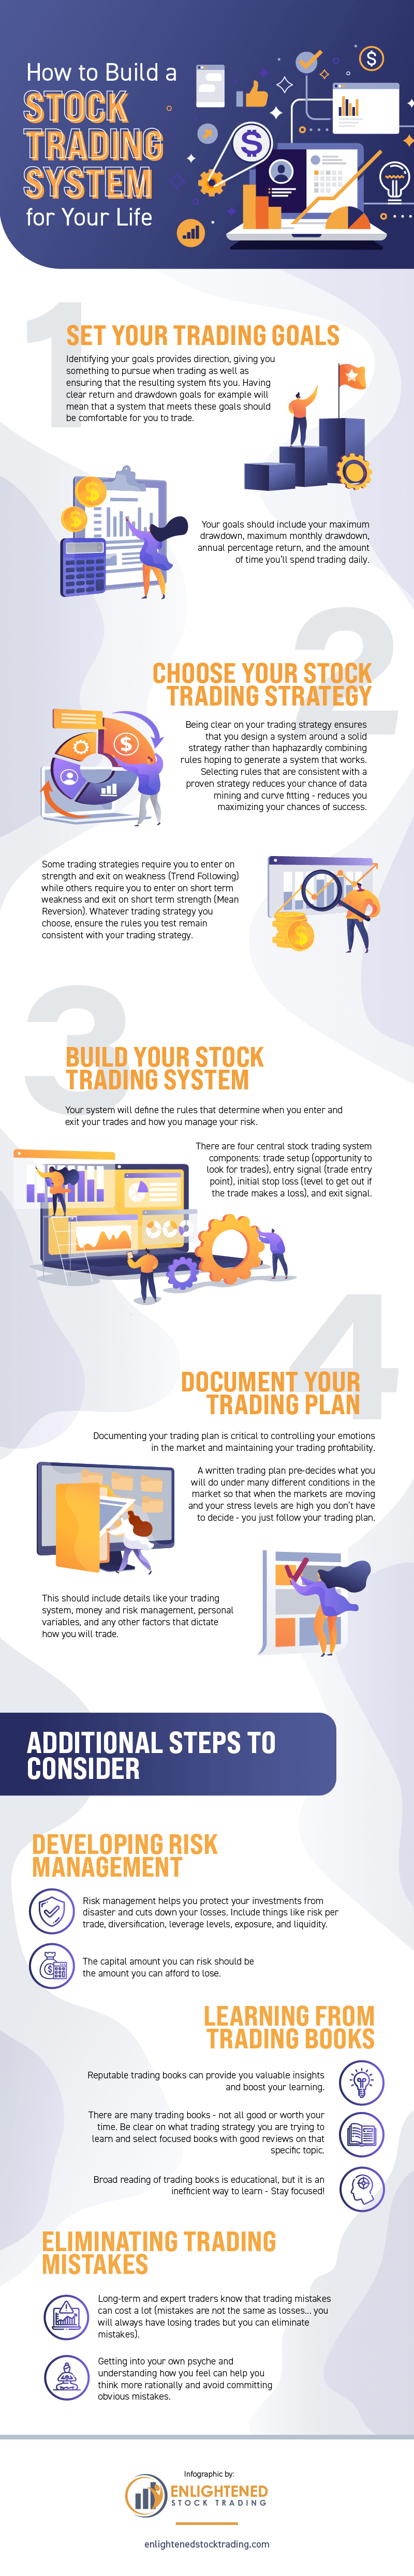 Stock Trading System: 3 Useful Tips You Need to Know [Infographic]